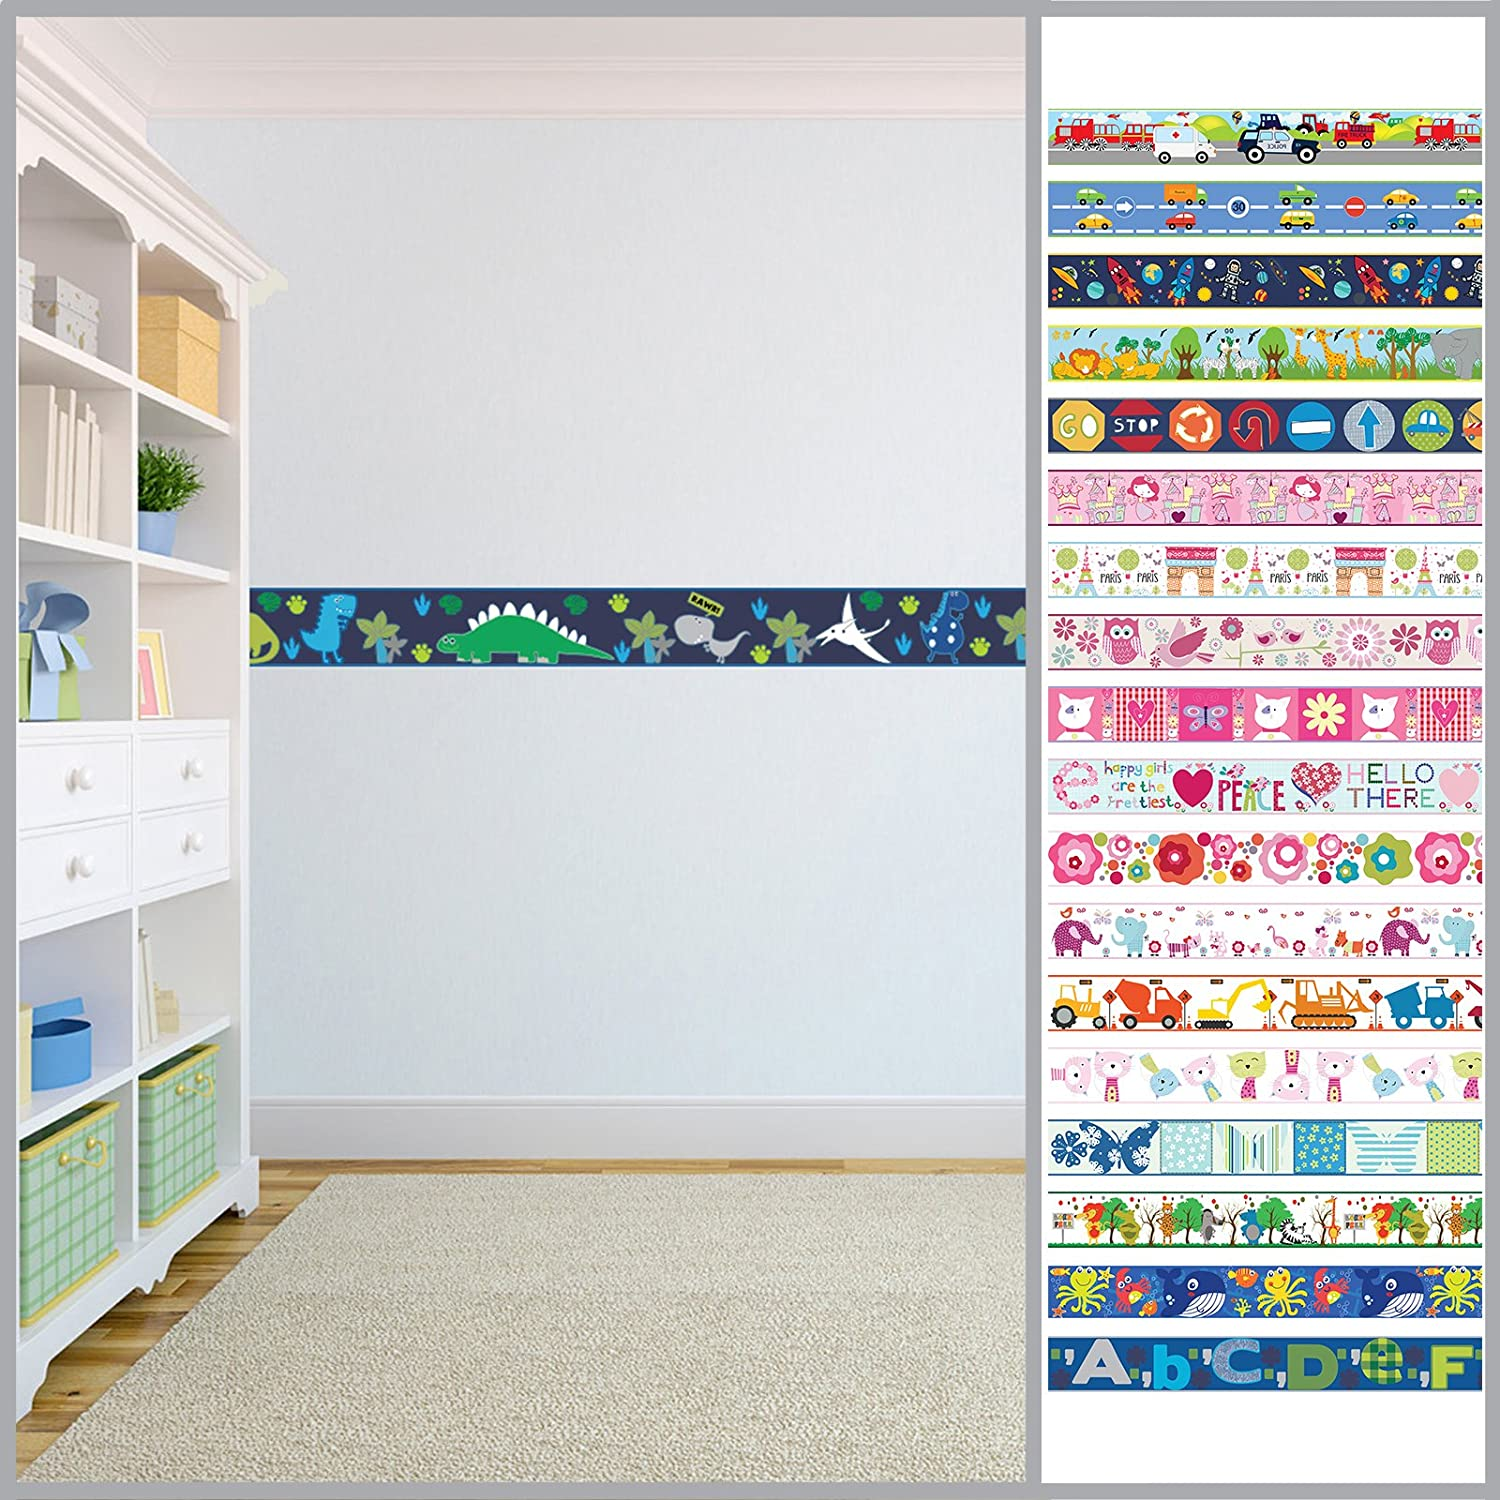 Children's Colourful Self Adhesive 5 Metre Long Vinyl Wallpaper Border Bedroom Décor - Dino in the Dark Shopisfy